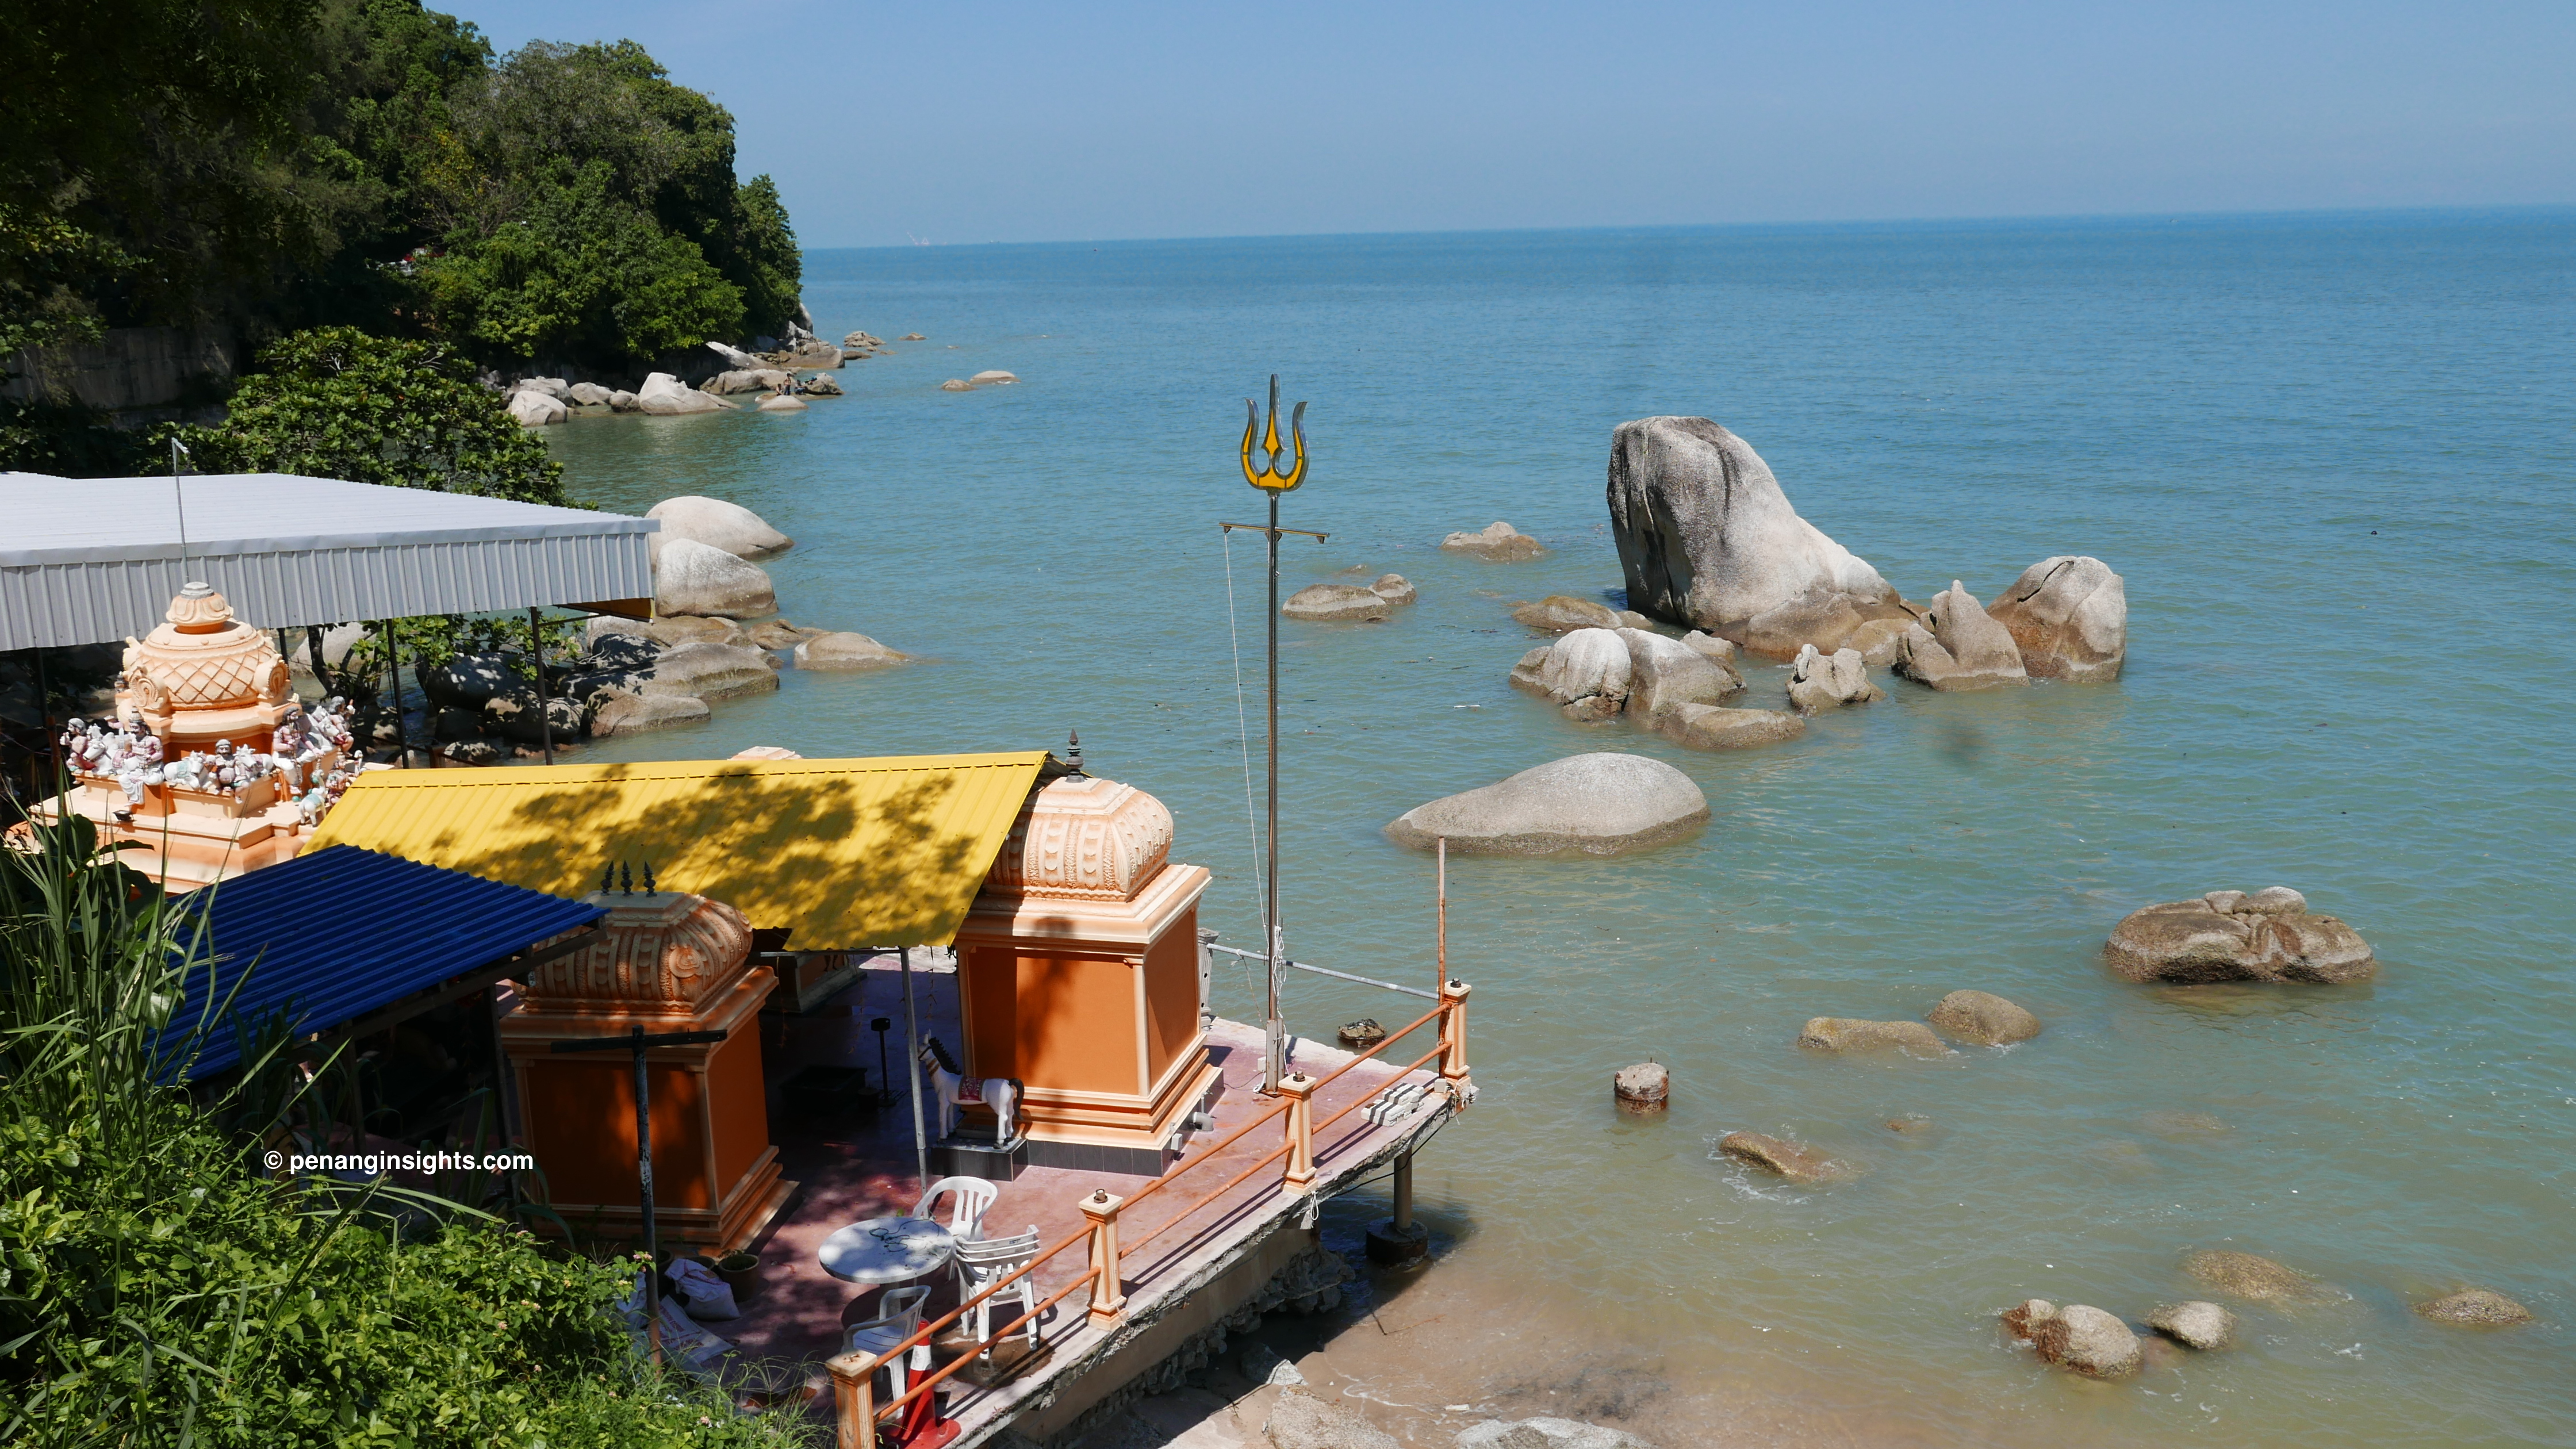 Penang attractions on sightseeing tours